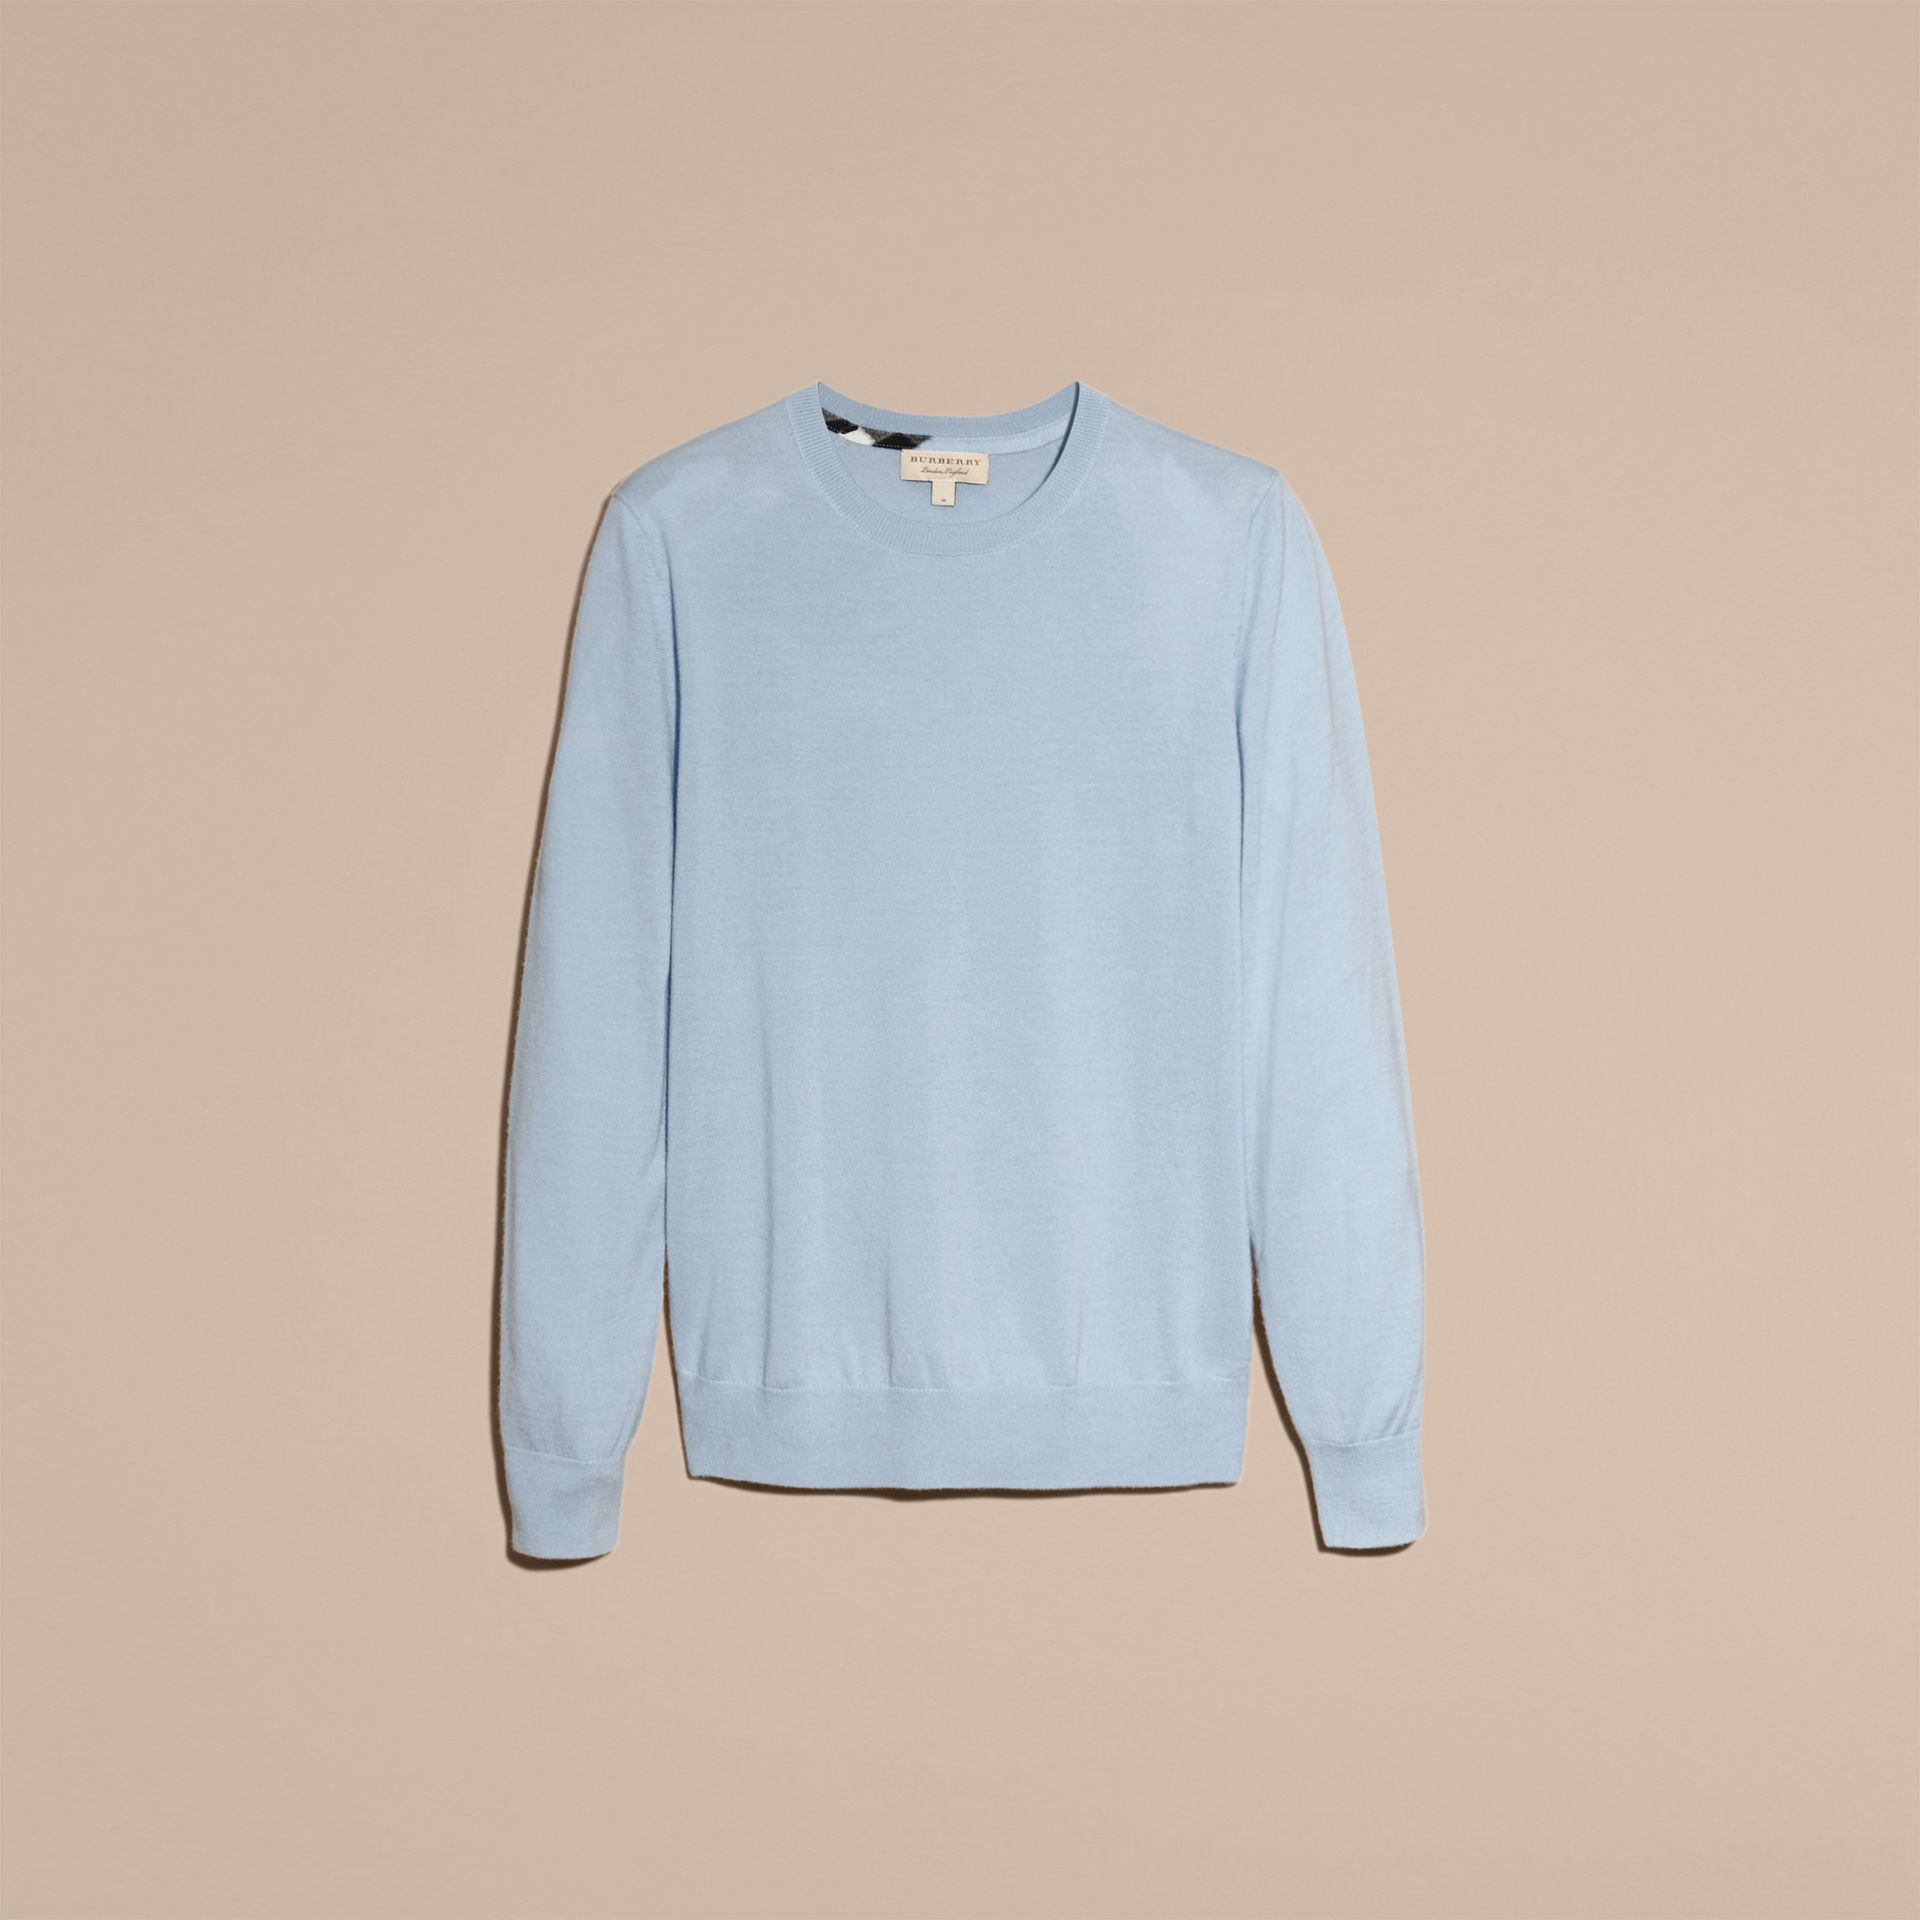 Check Jacquard Detail Cashmere Sweater in Light Blue - Men | Burberry - gallery image 3